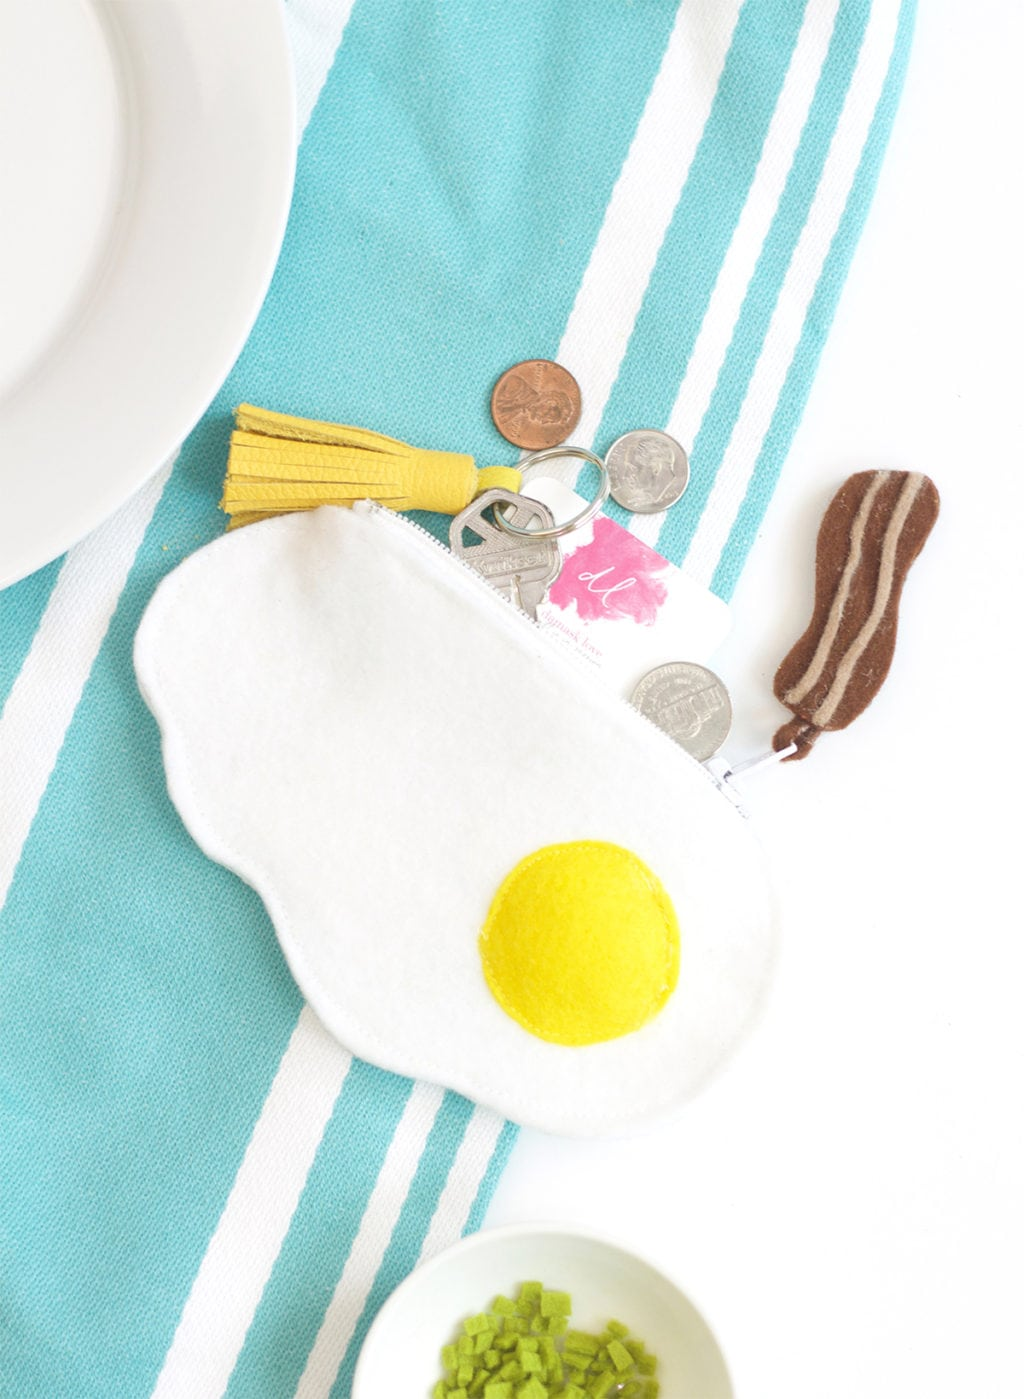 DIY Fried Egg Felt Zipper Pouch